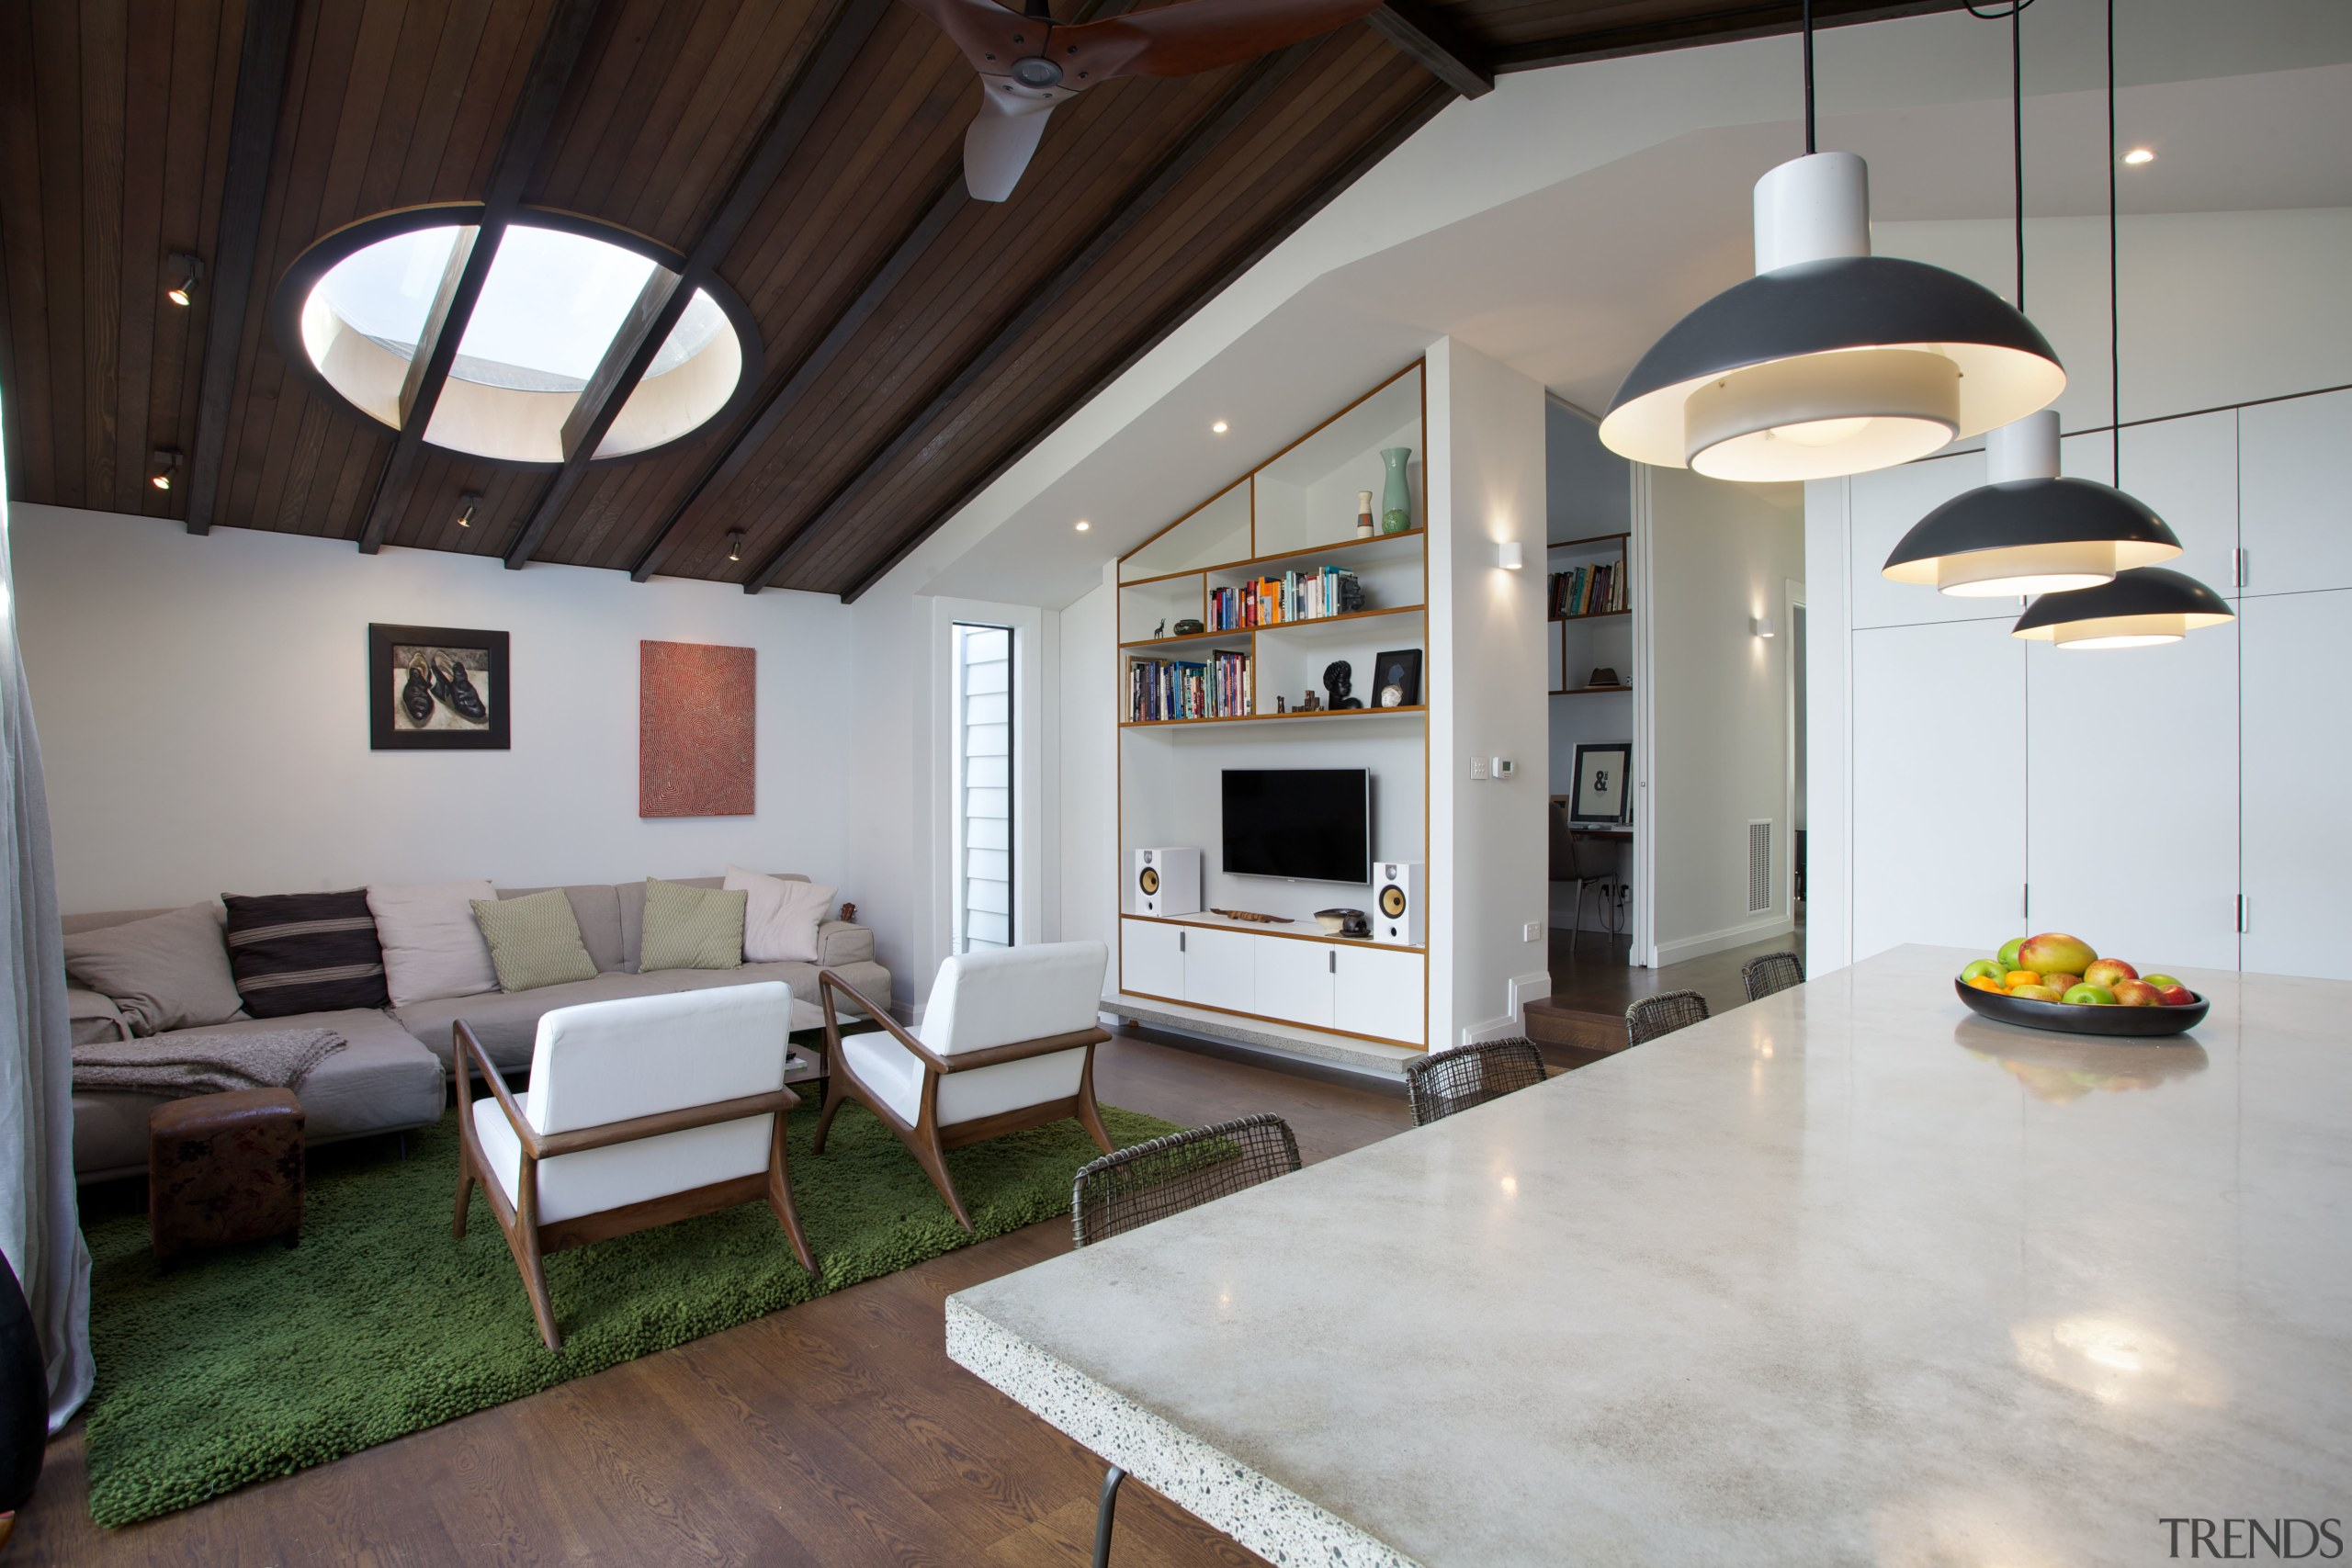 In this renovated villa, steps lead down to ceiling, floor, house, interior design, living room, loft, real estate, gray